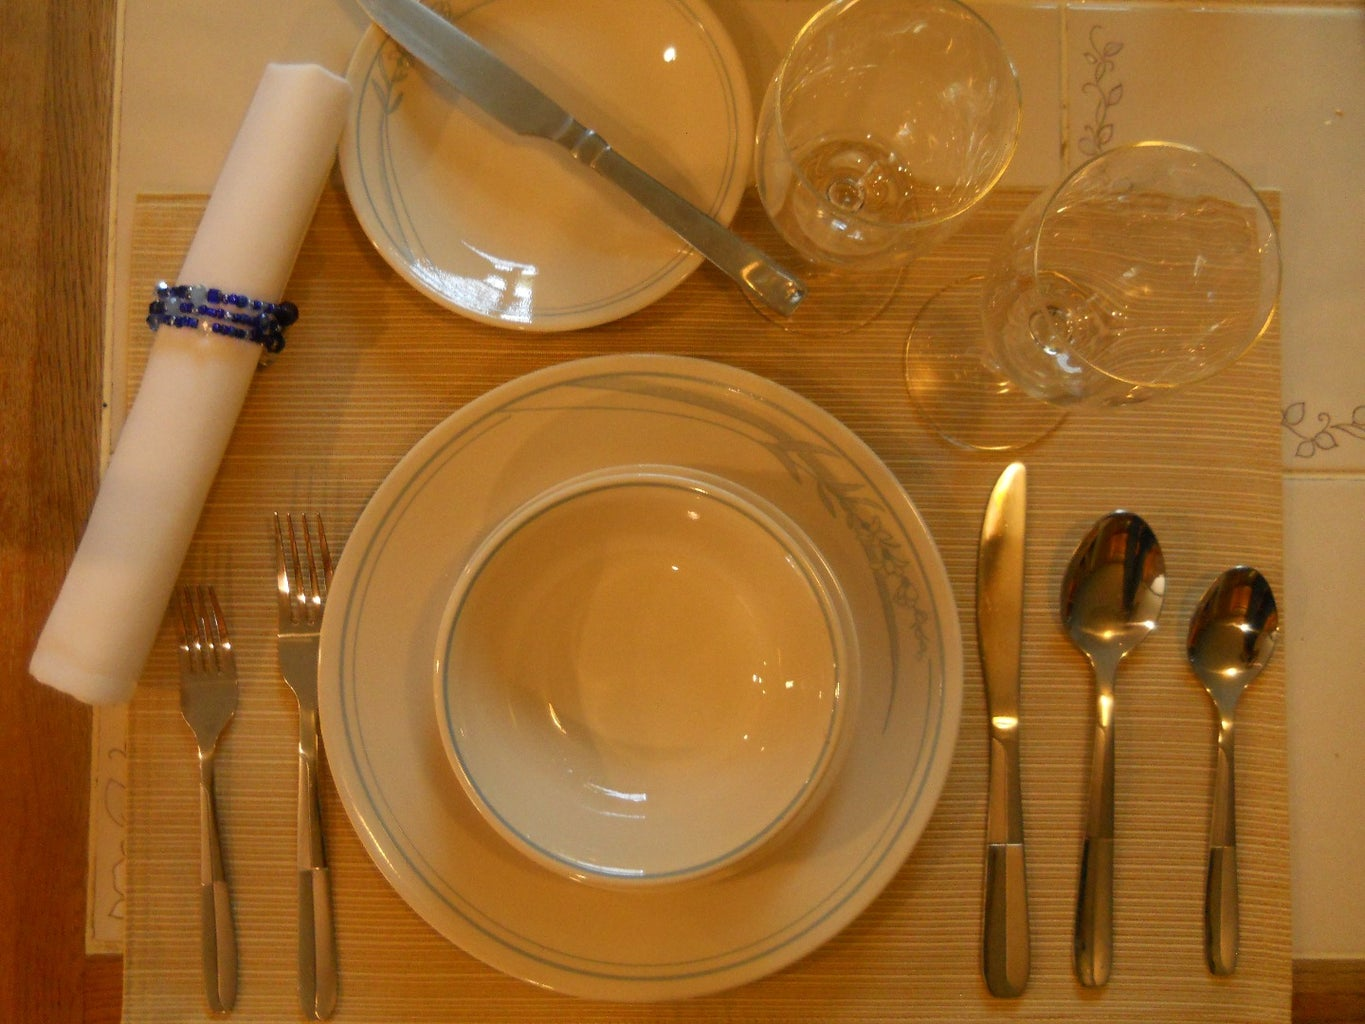 The Basic Kitchen: Guide to Place Settings